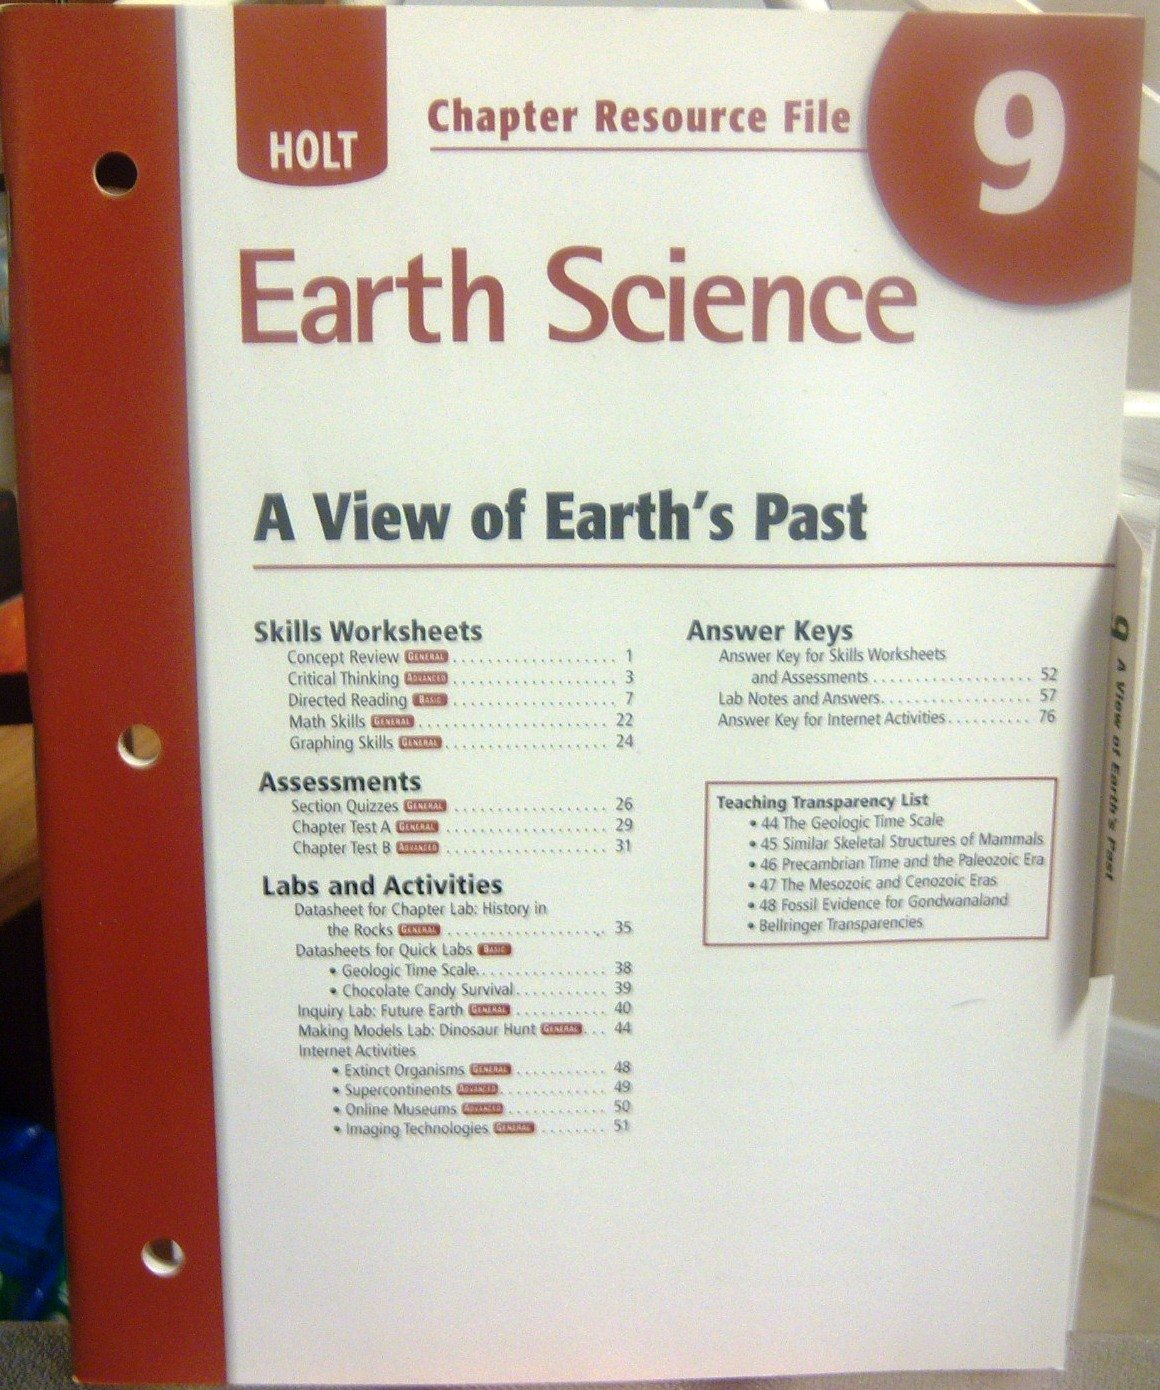 Holt Chapter Resource File No 9 Earth Science A View Of Earth S